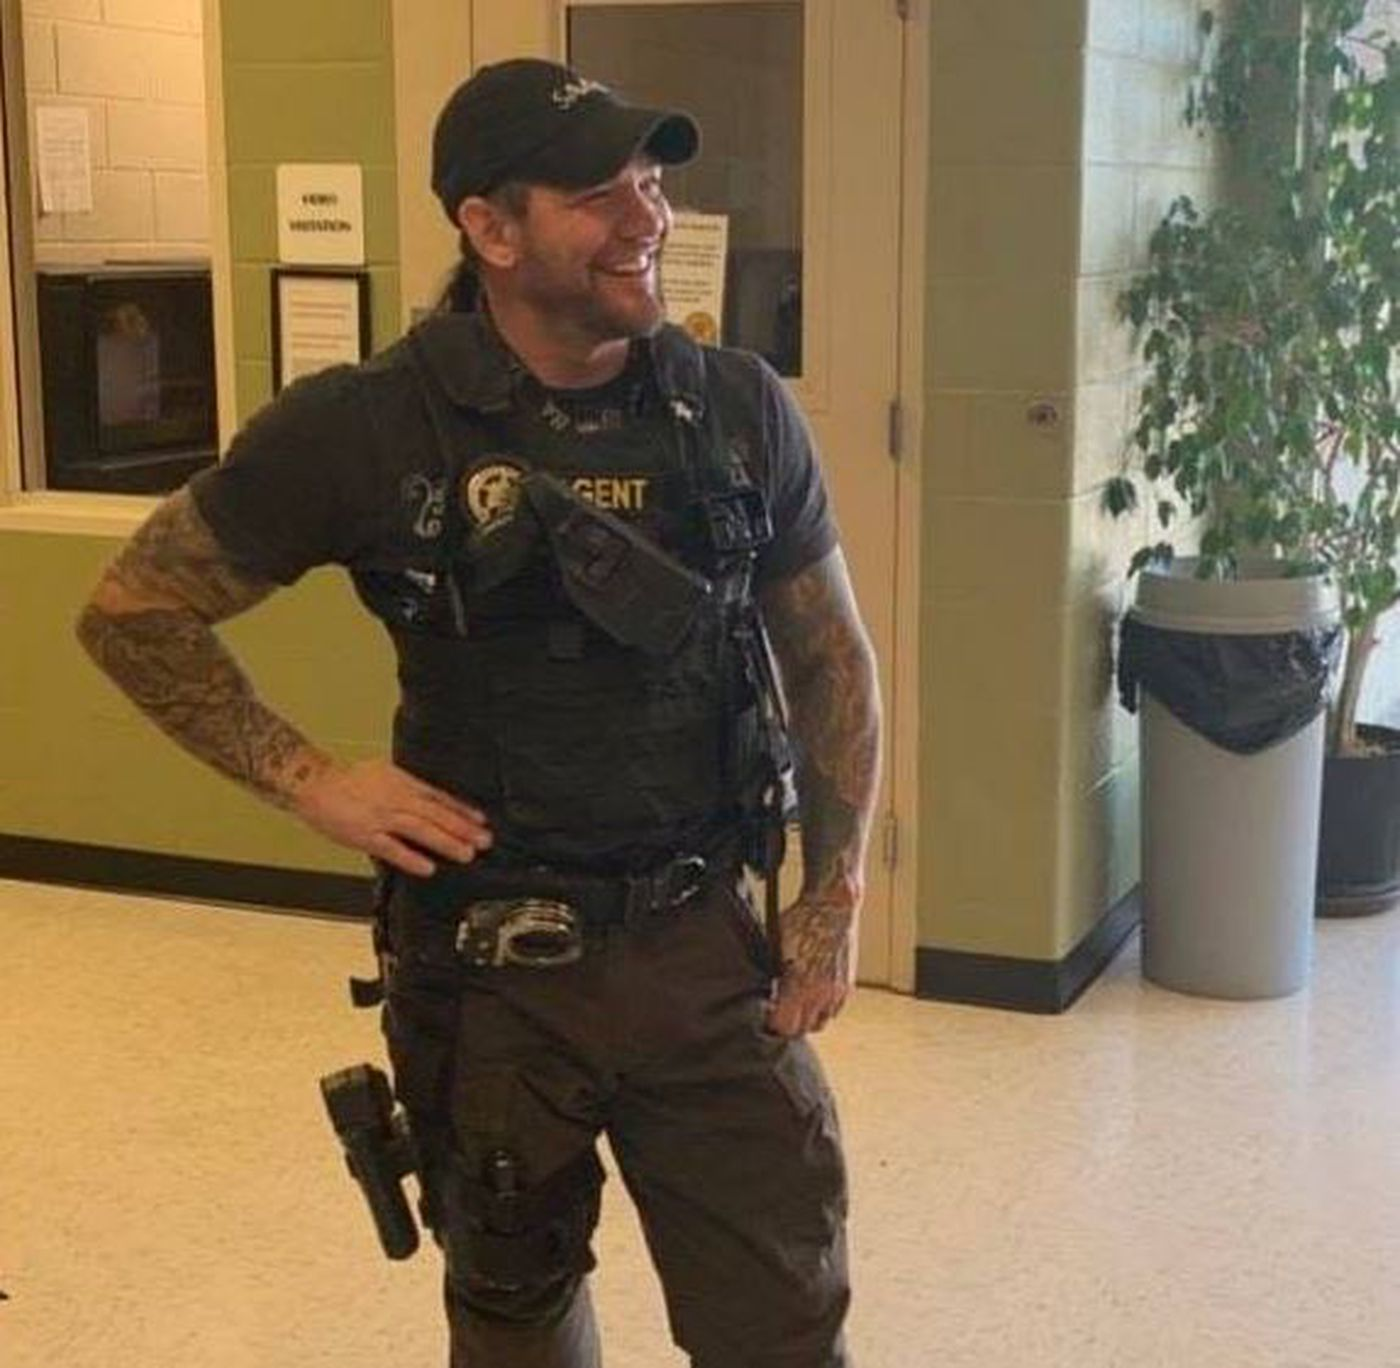 Dog the Bounty Hunter star Leland Chapman was injured on Tuesday after sustaining a injury during a manhunt in Colorado. Leland and his father were on a hunt of fugitive named Edward Morales, while he tore his ACL and will require surgery.